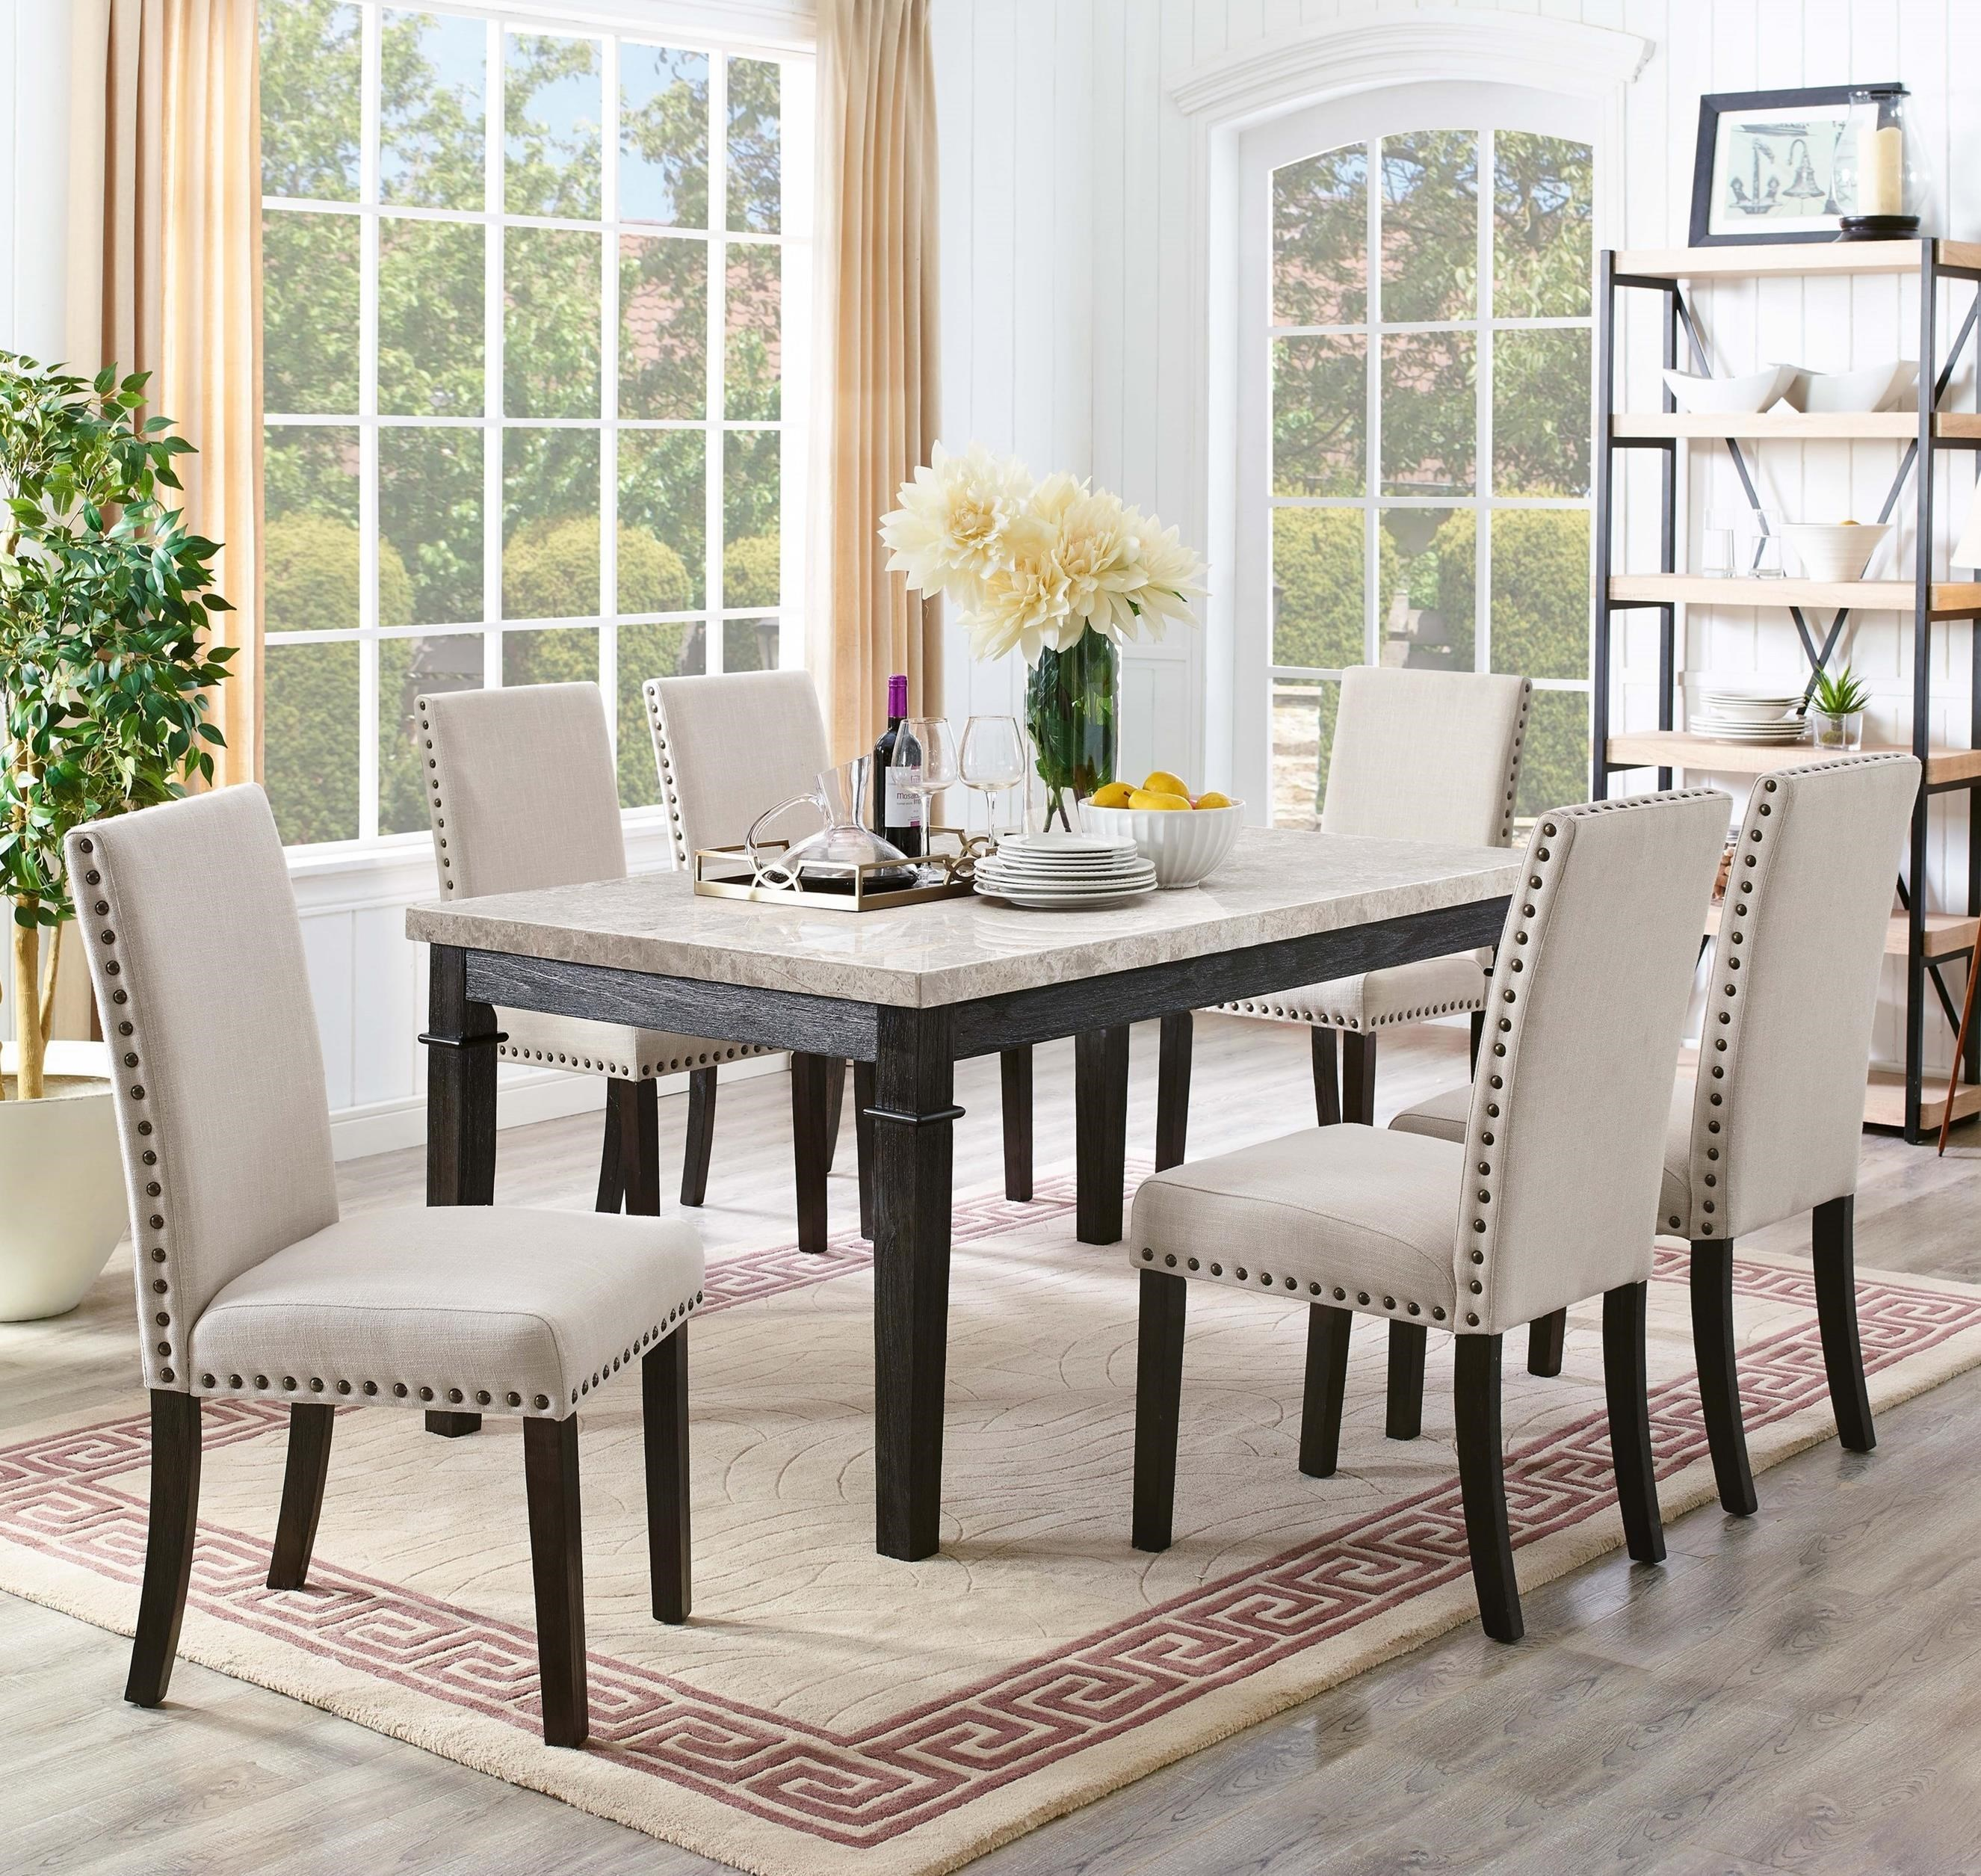 Picture of: Elements Greystone 7 Piece Dining Set With 6 Upholstered Side Chairs Royal Furniture Dining 7 Or More Piece Sets